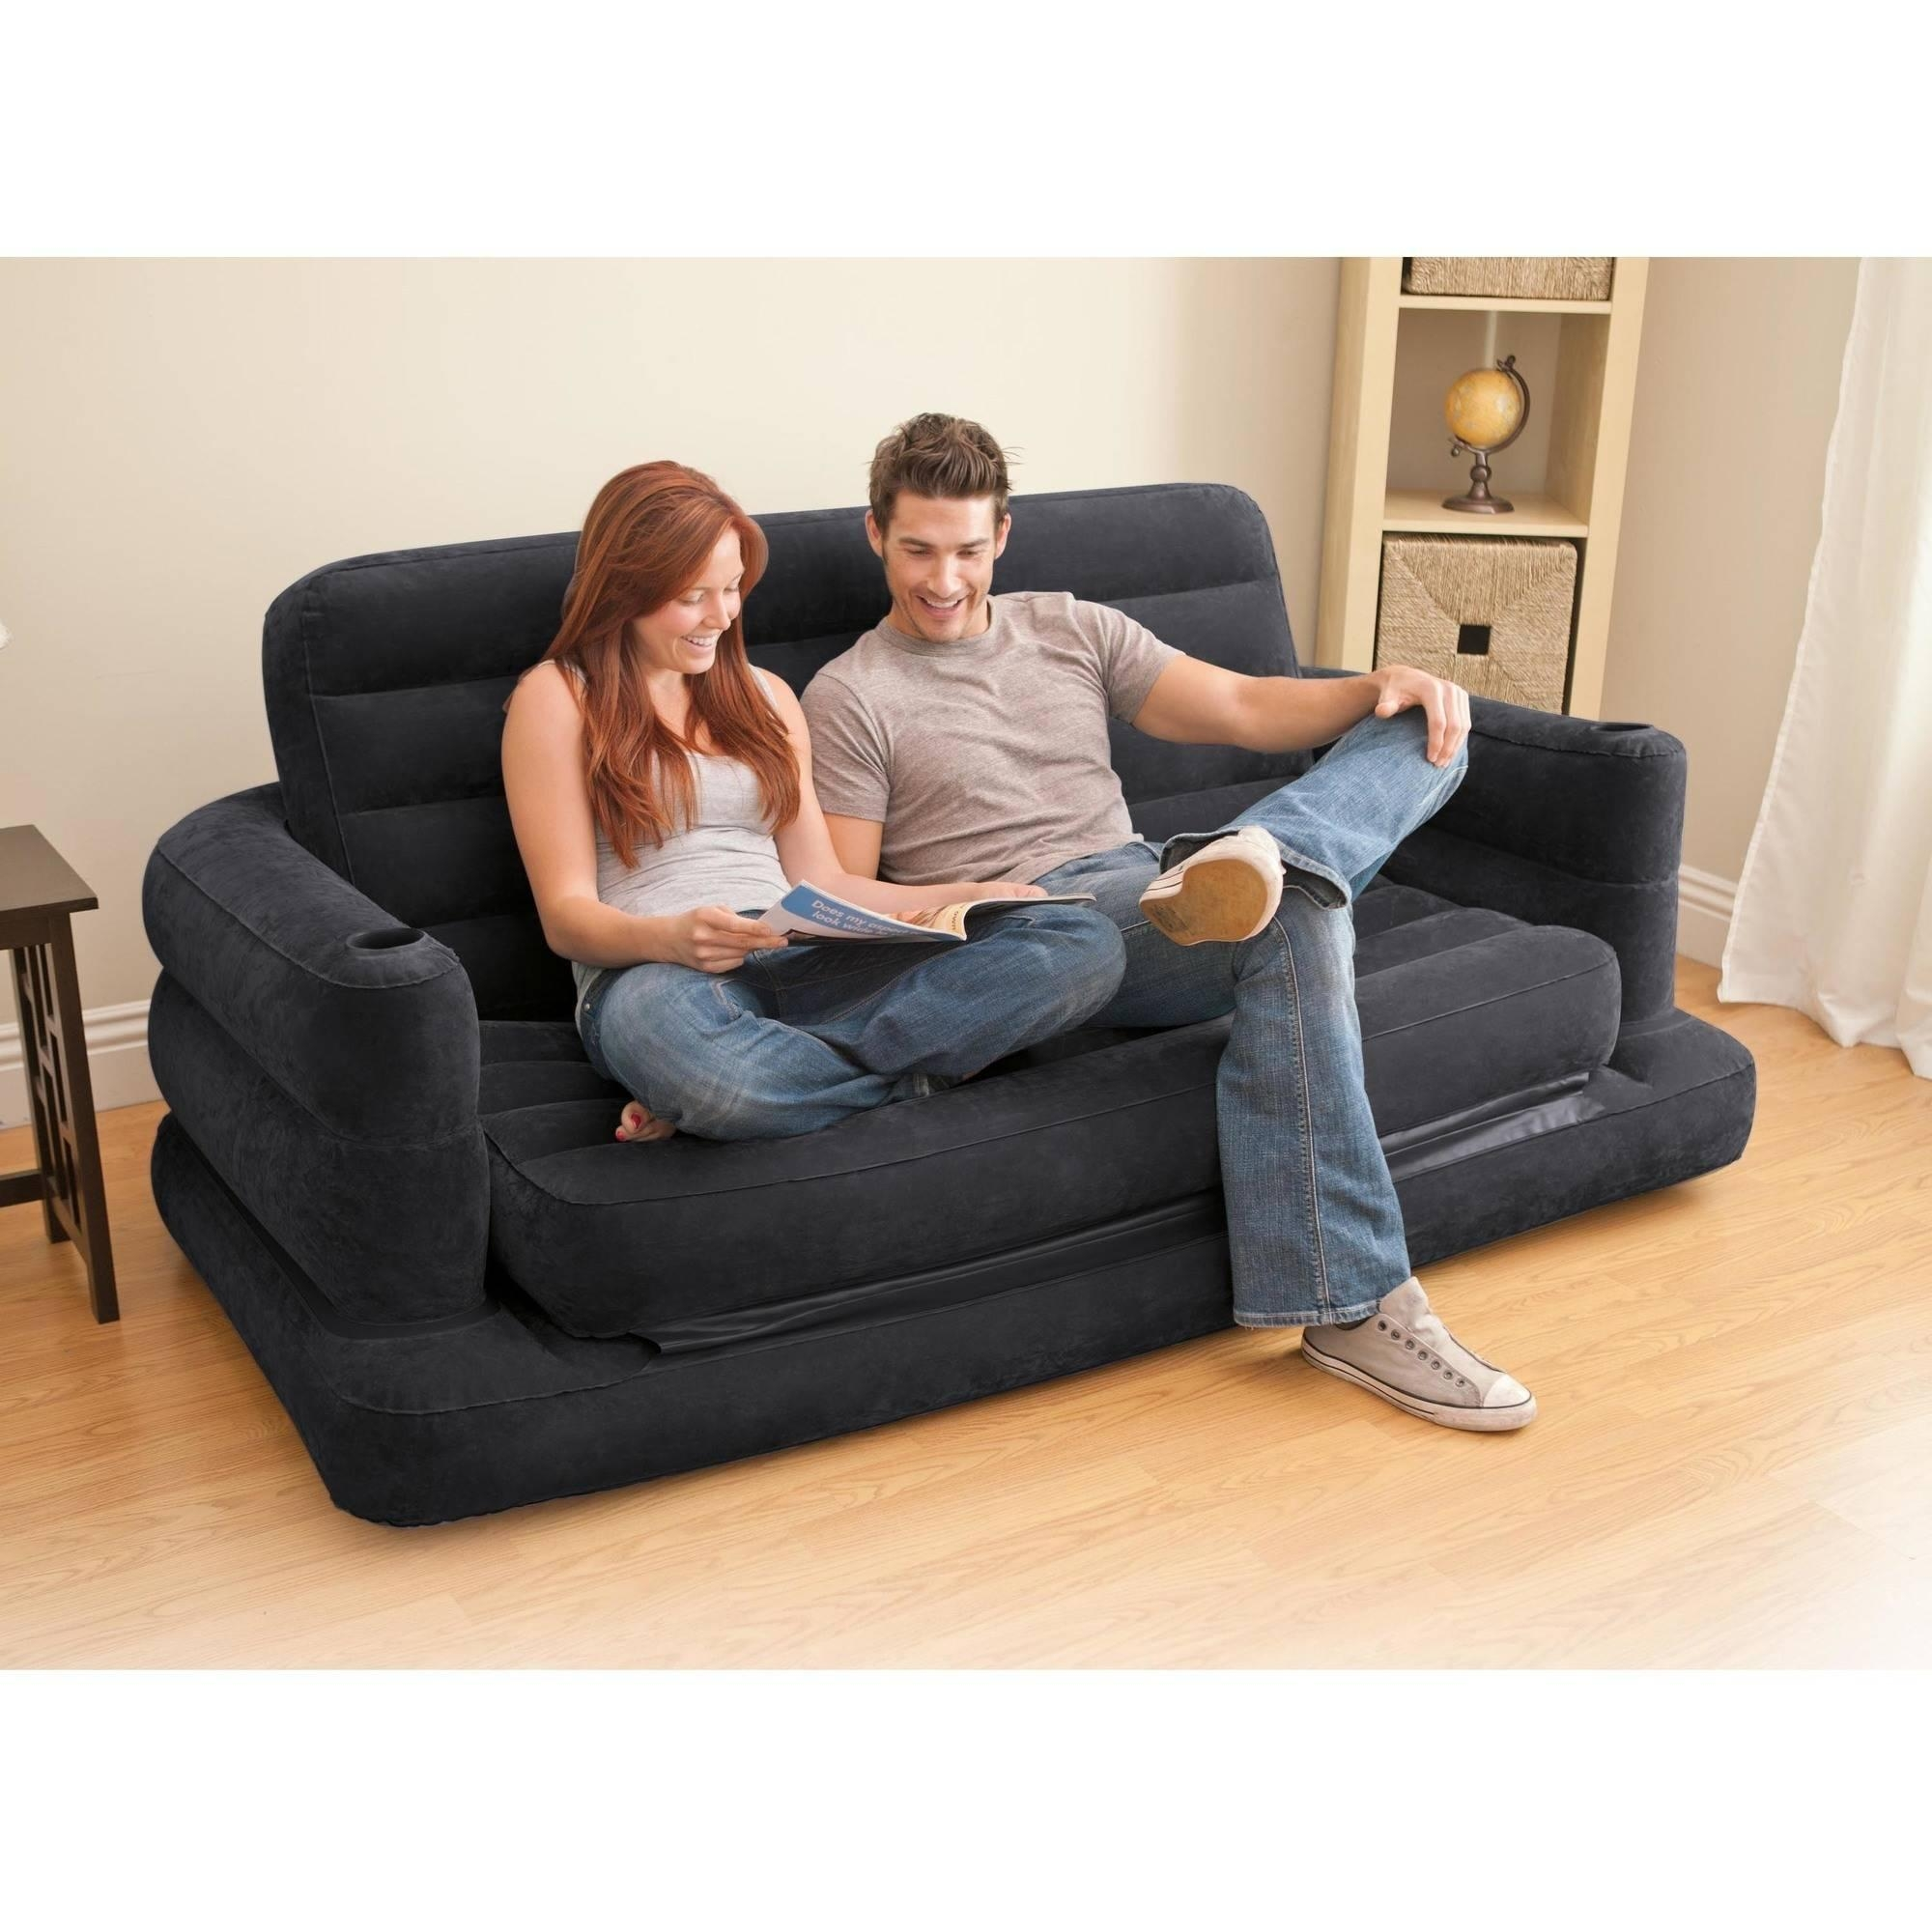 Intex Sofa Bed, Dark Grey | Ebay In Intex Inflatable Pull Out Sofas (View 18 of 20)